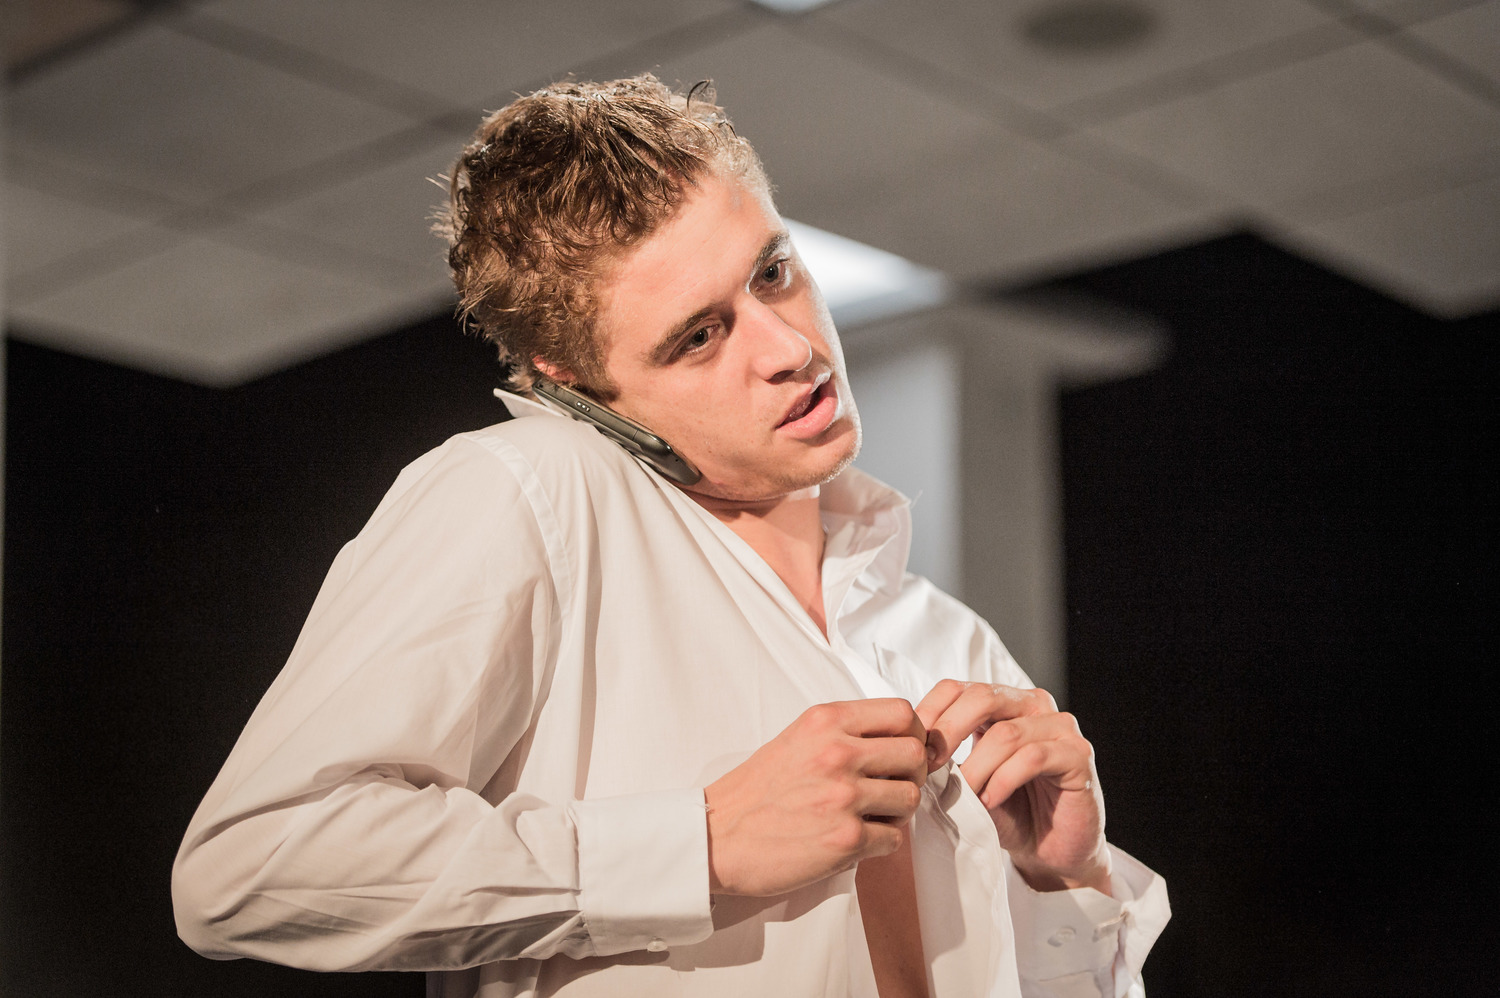 Max Irons in Farragut North, Southwark Playhouse Off West End, composer - Jude Obermüller (photo by Robert Workman)